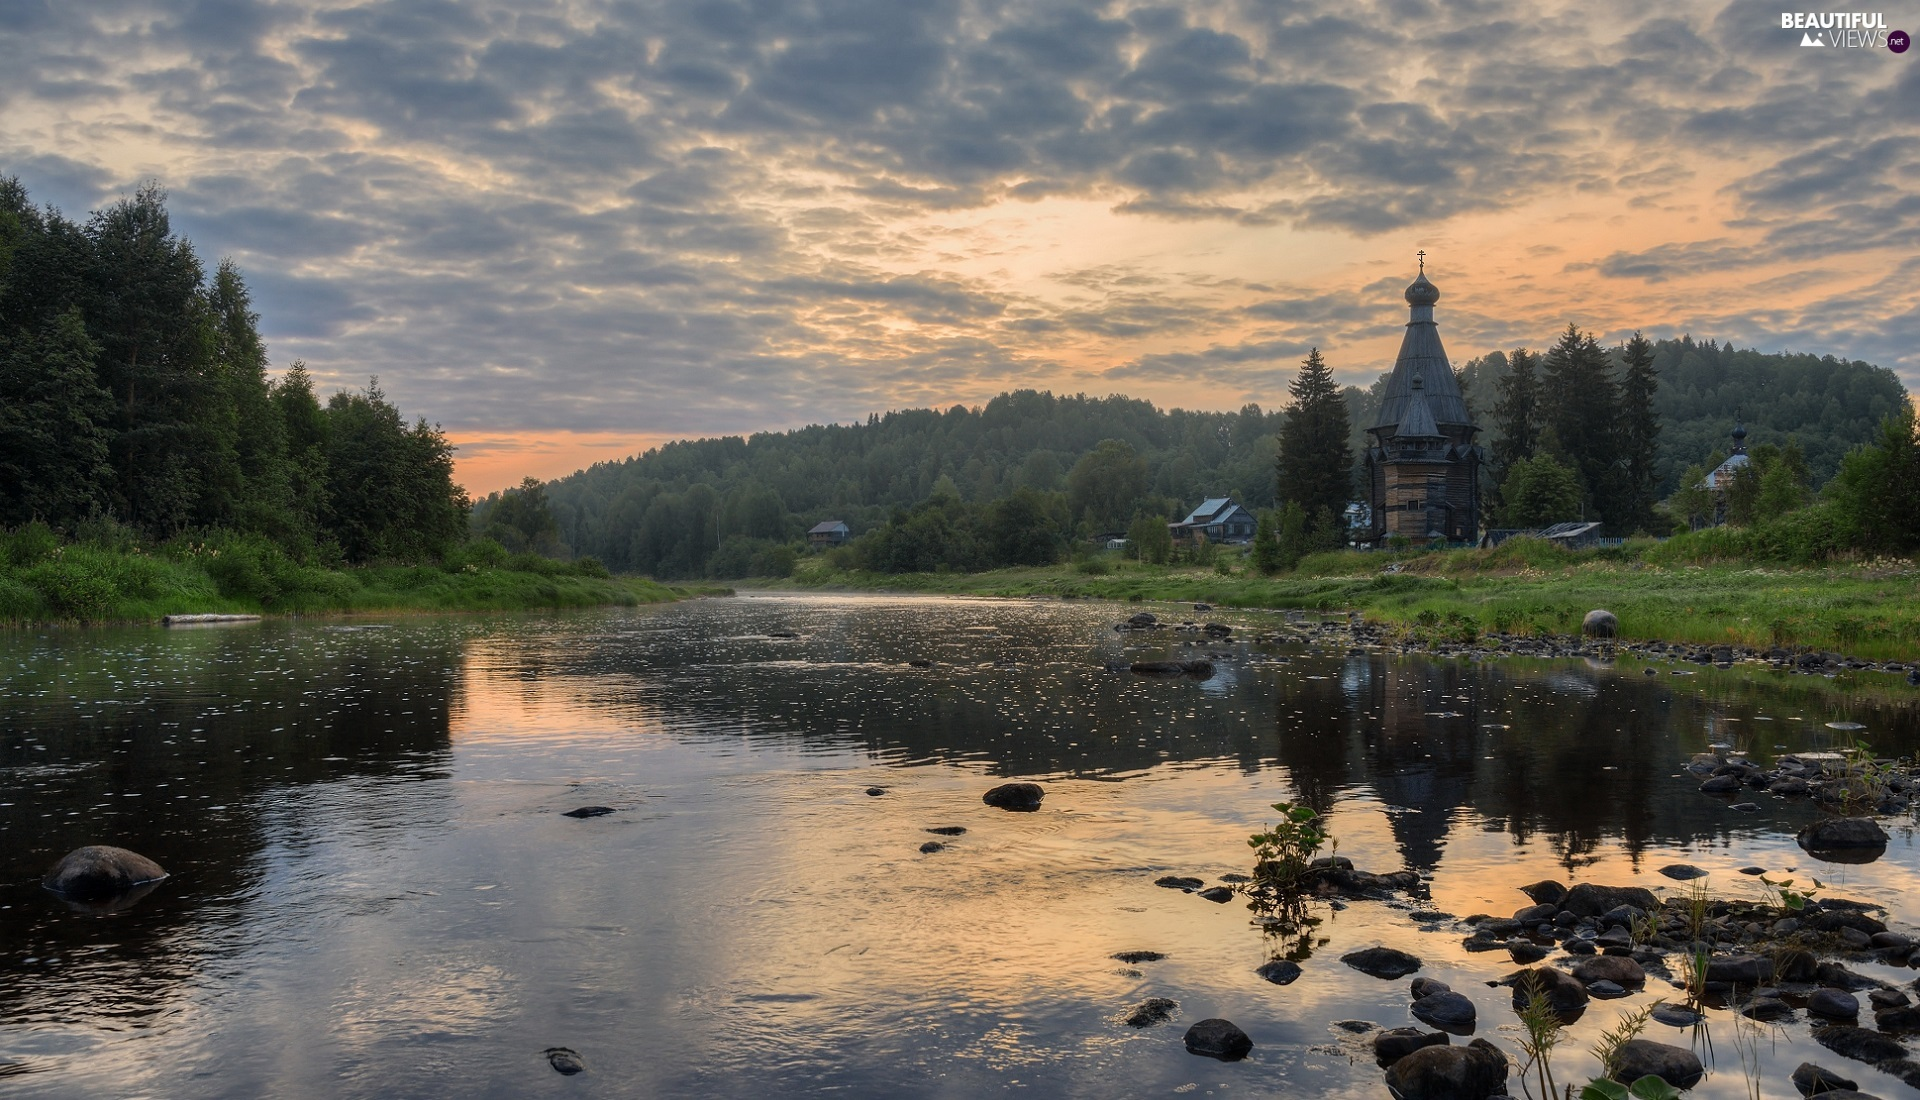 River, Stones, Houses, trees, Cerkiew, Fog, Sunrise, viewes